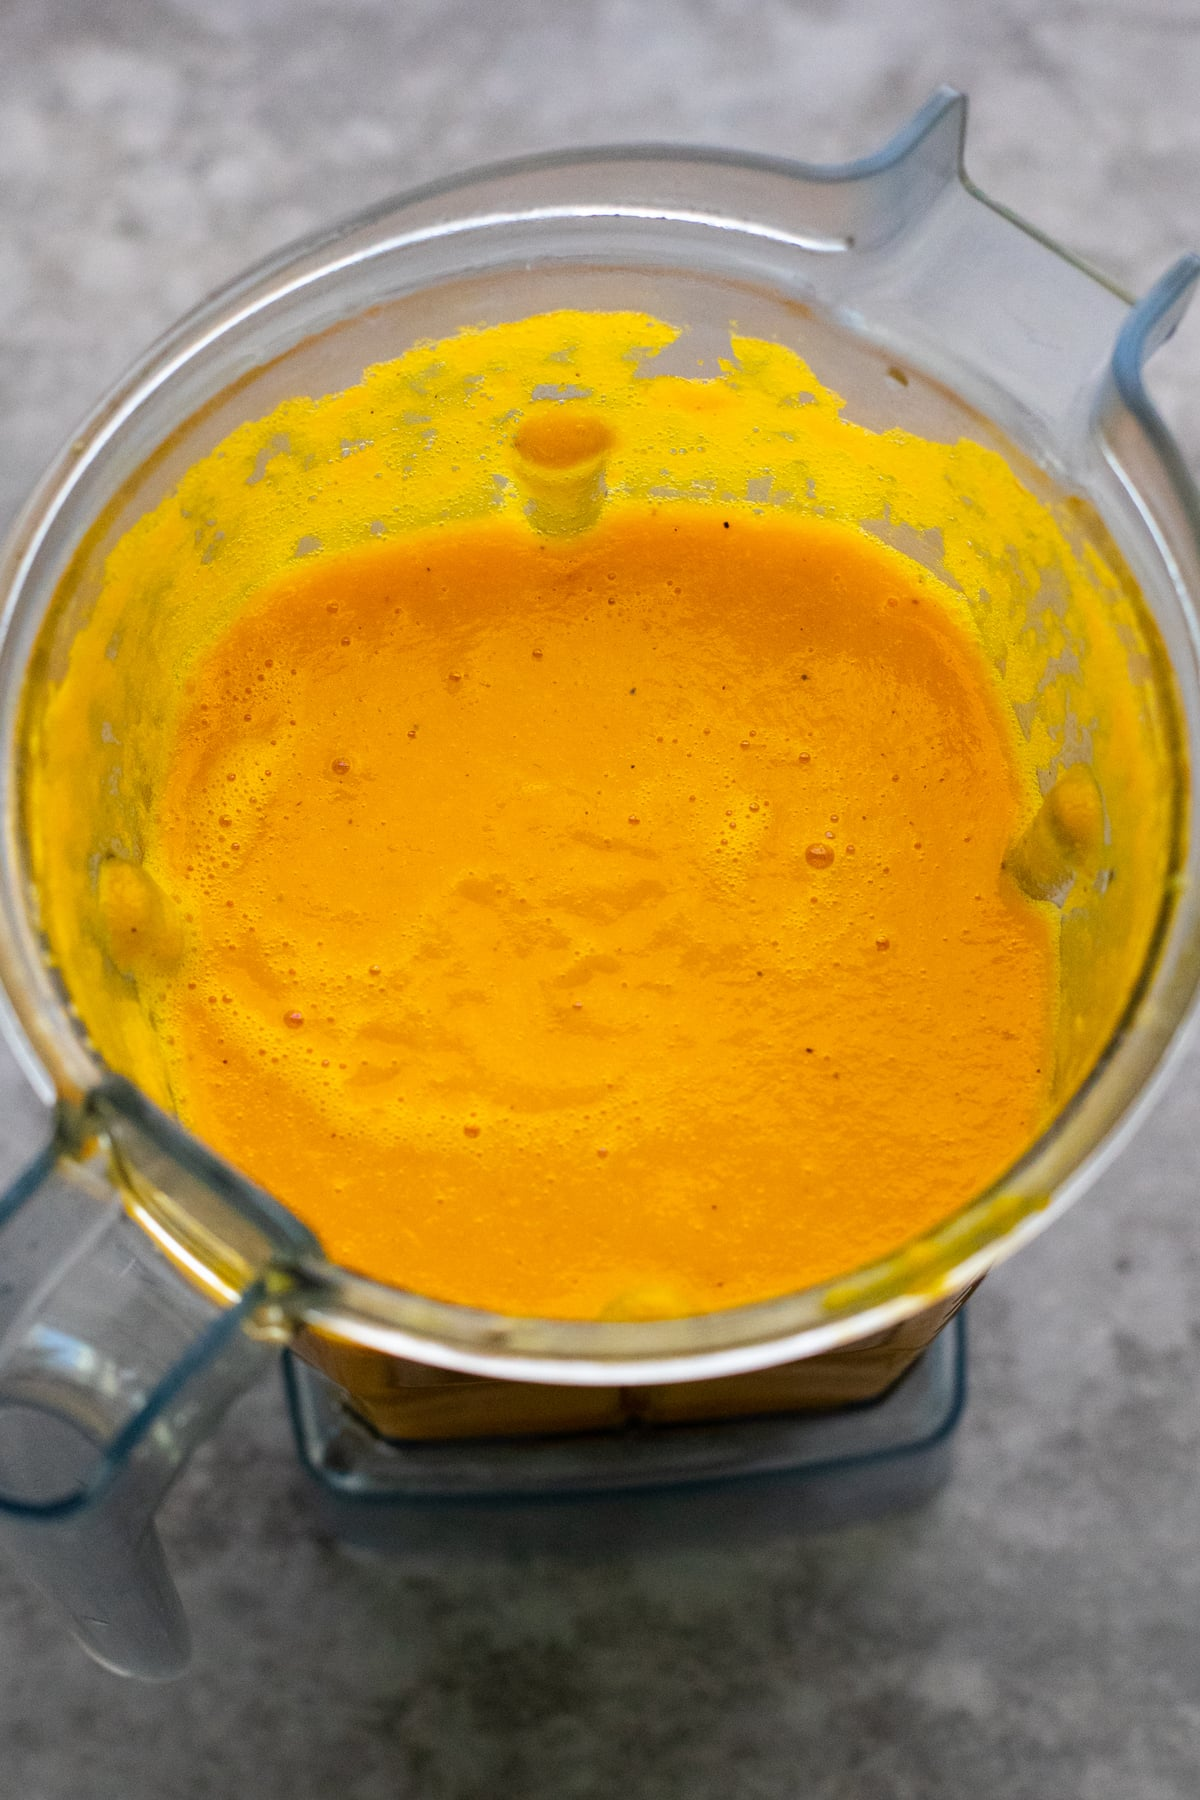 Orange carrot soup pureed in blender container.